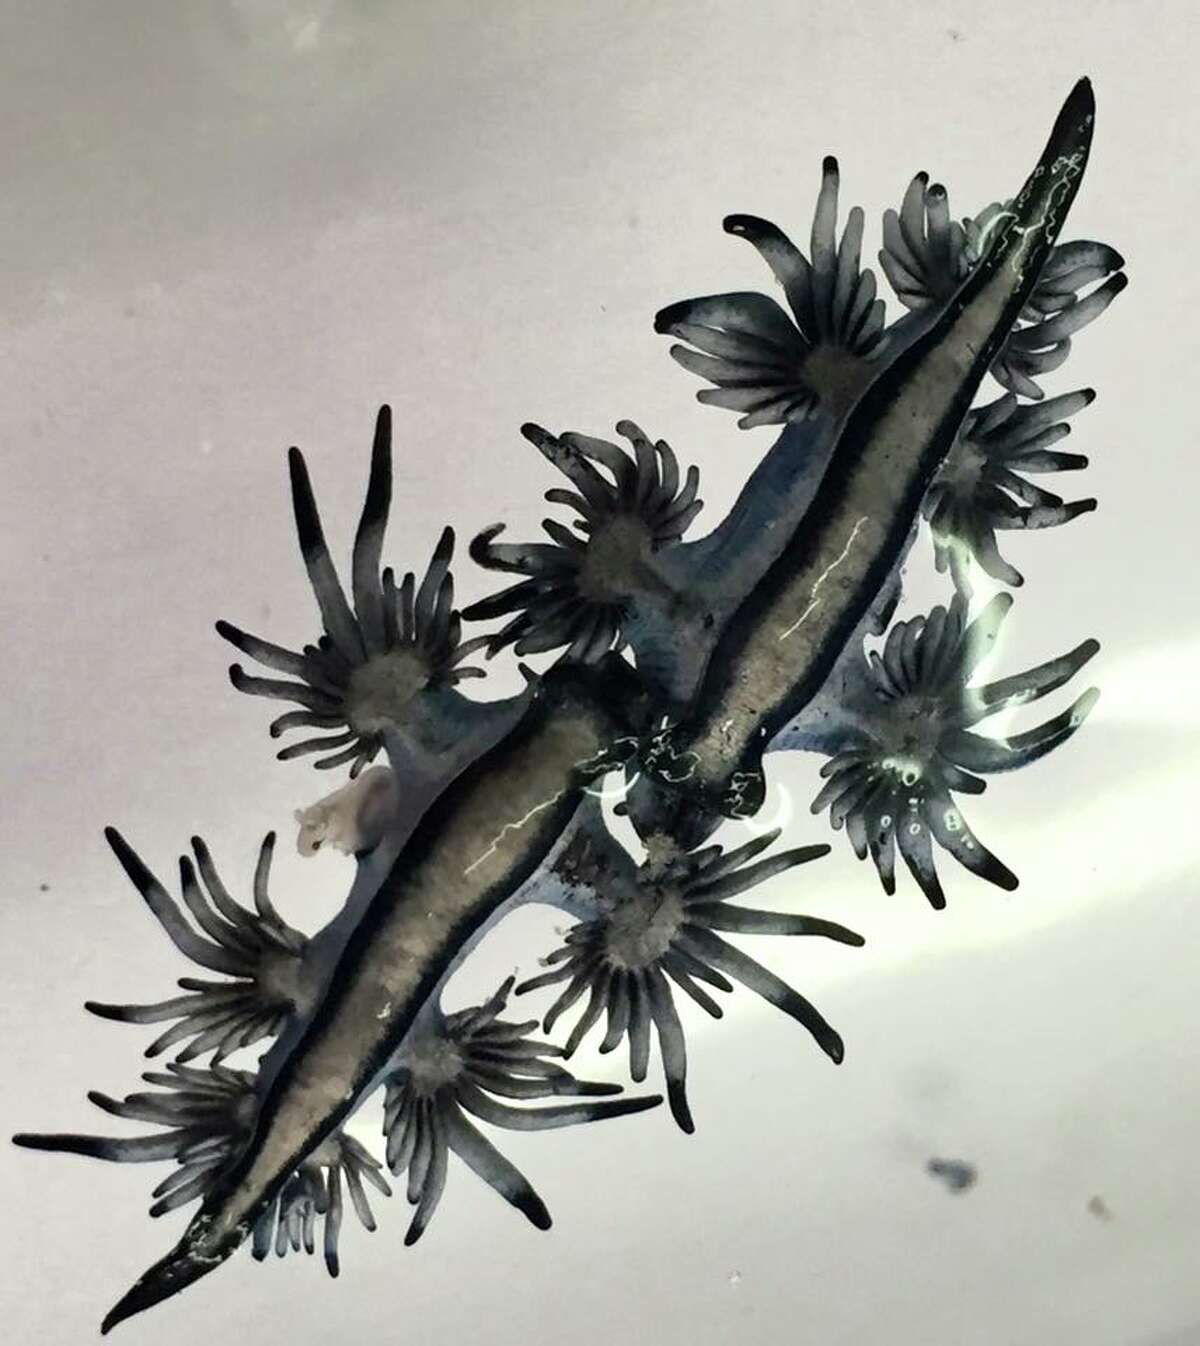 These blue sea slugs (blue dragon nudibranchs) are kind of like squids, snails and oysters. These were found on Malaquite Beach on March 30.